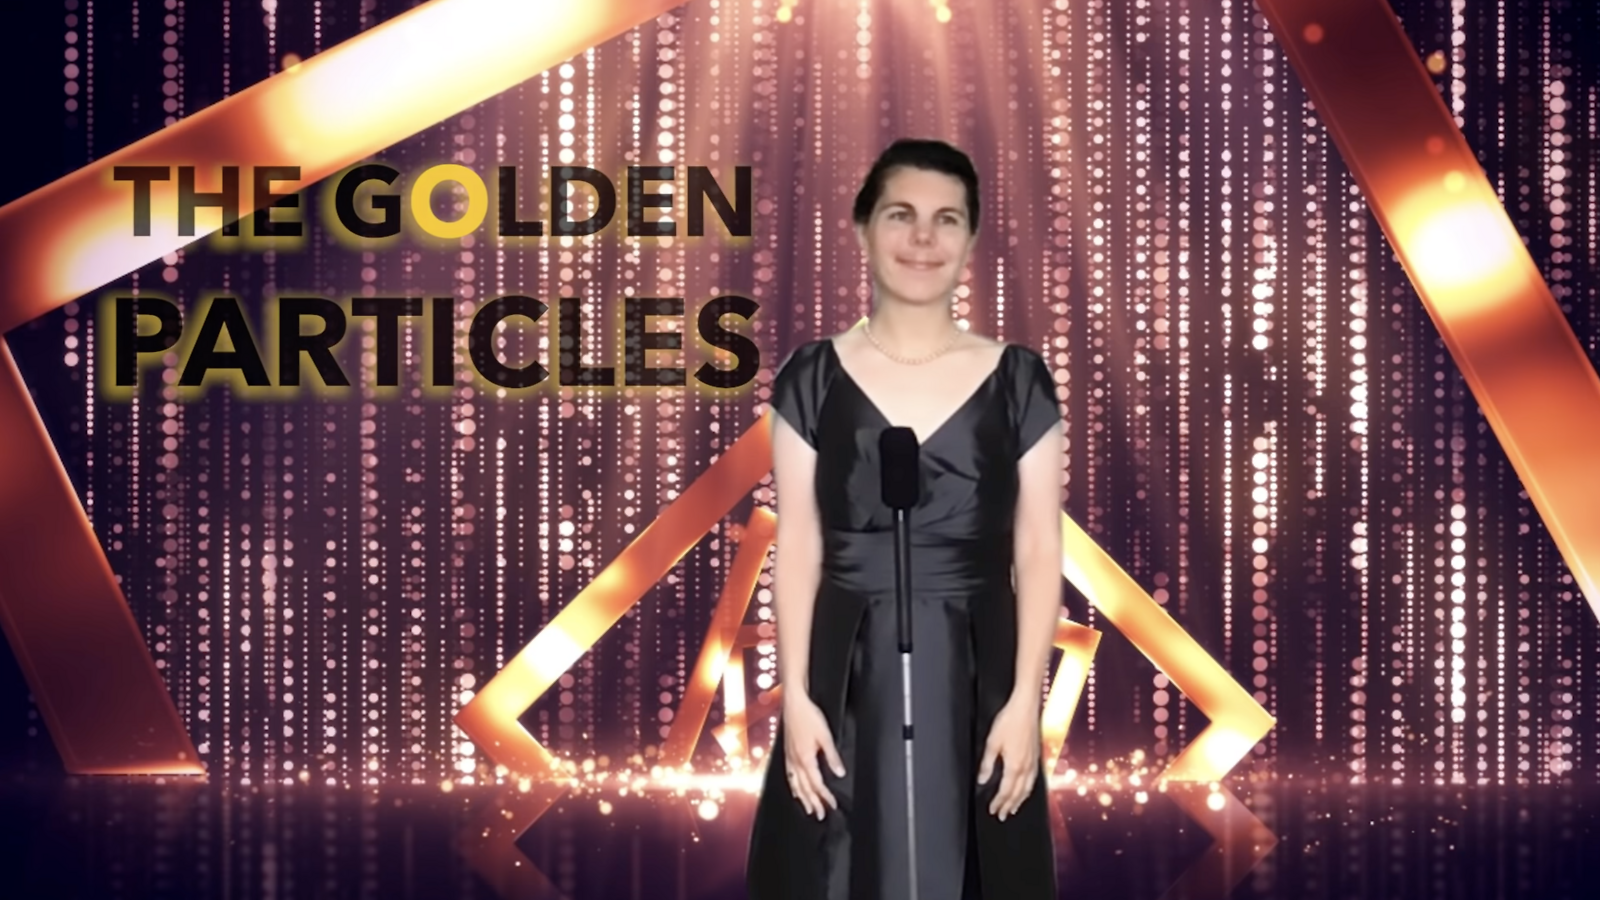 The Golden Particle Awards